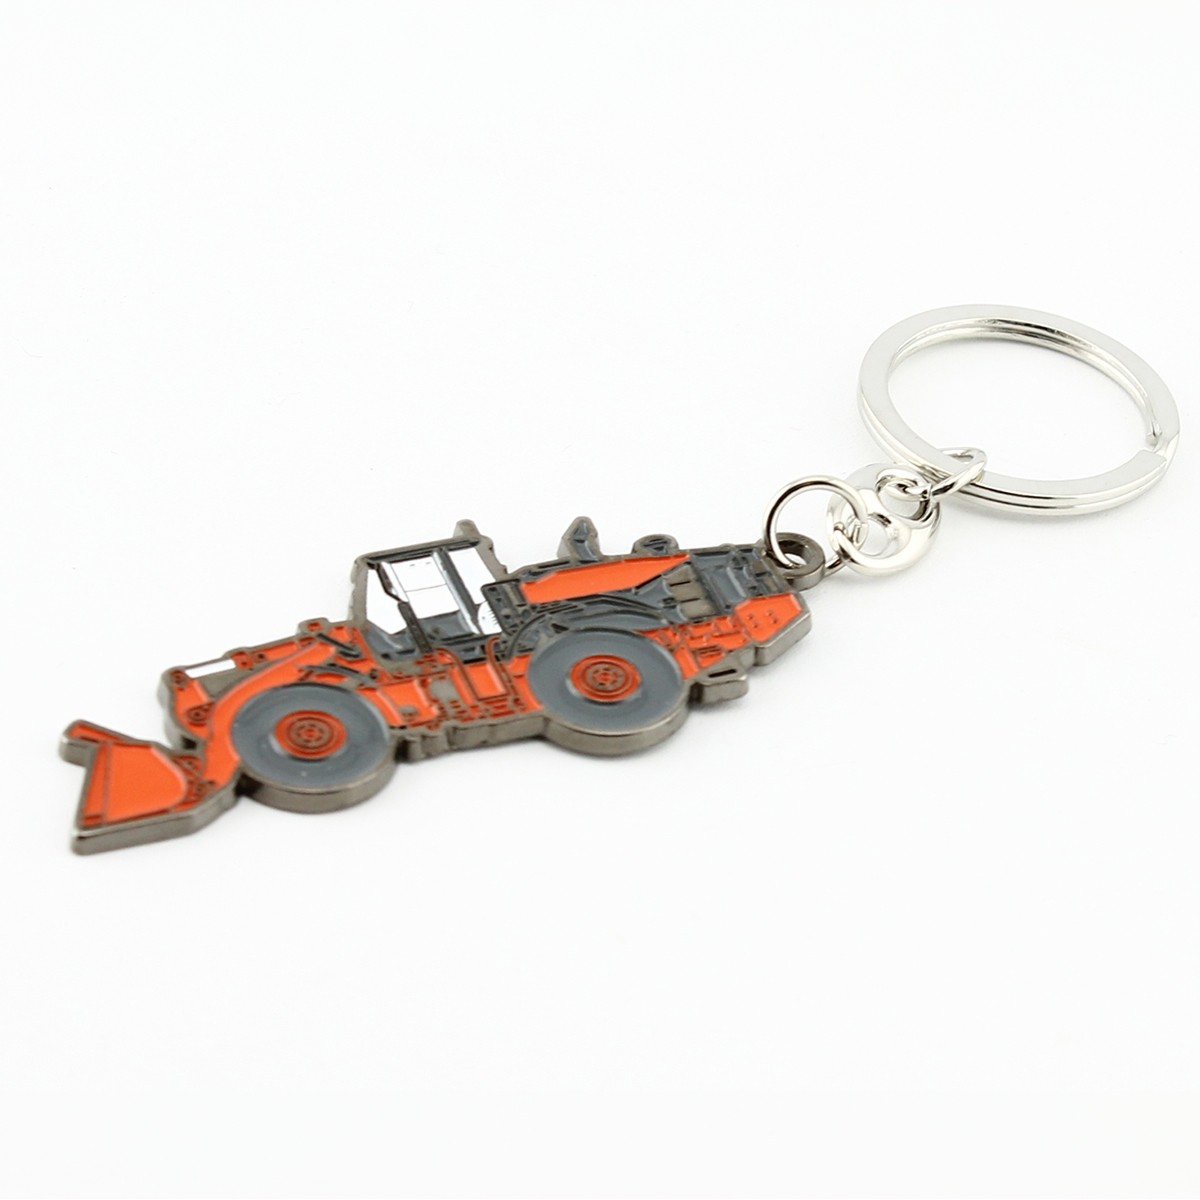 ZW310-6 WHEEL LOADER METAL KEYCHAIN